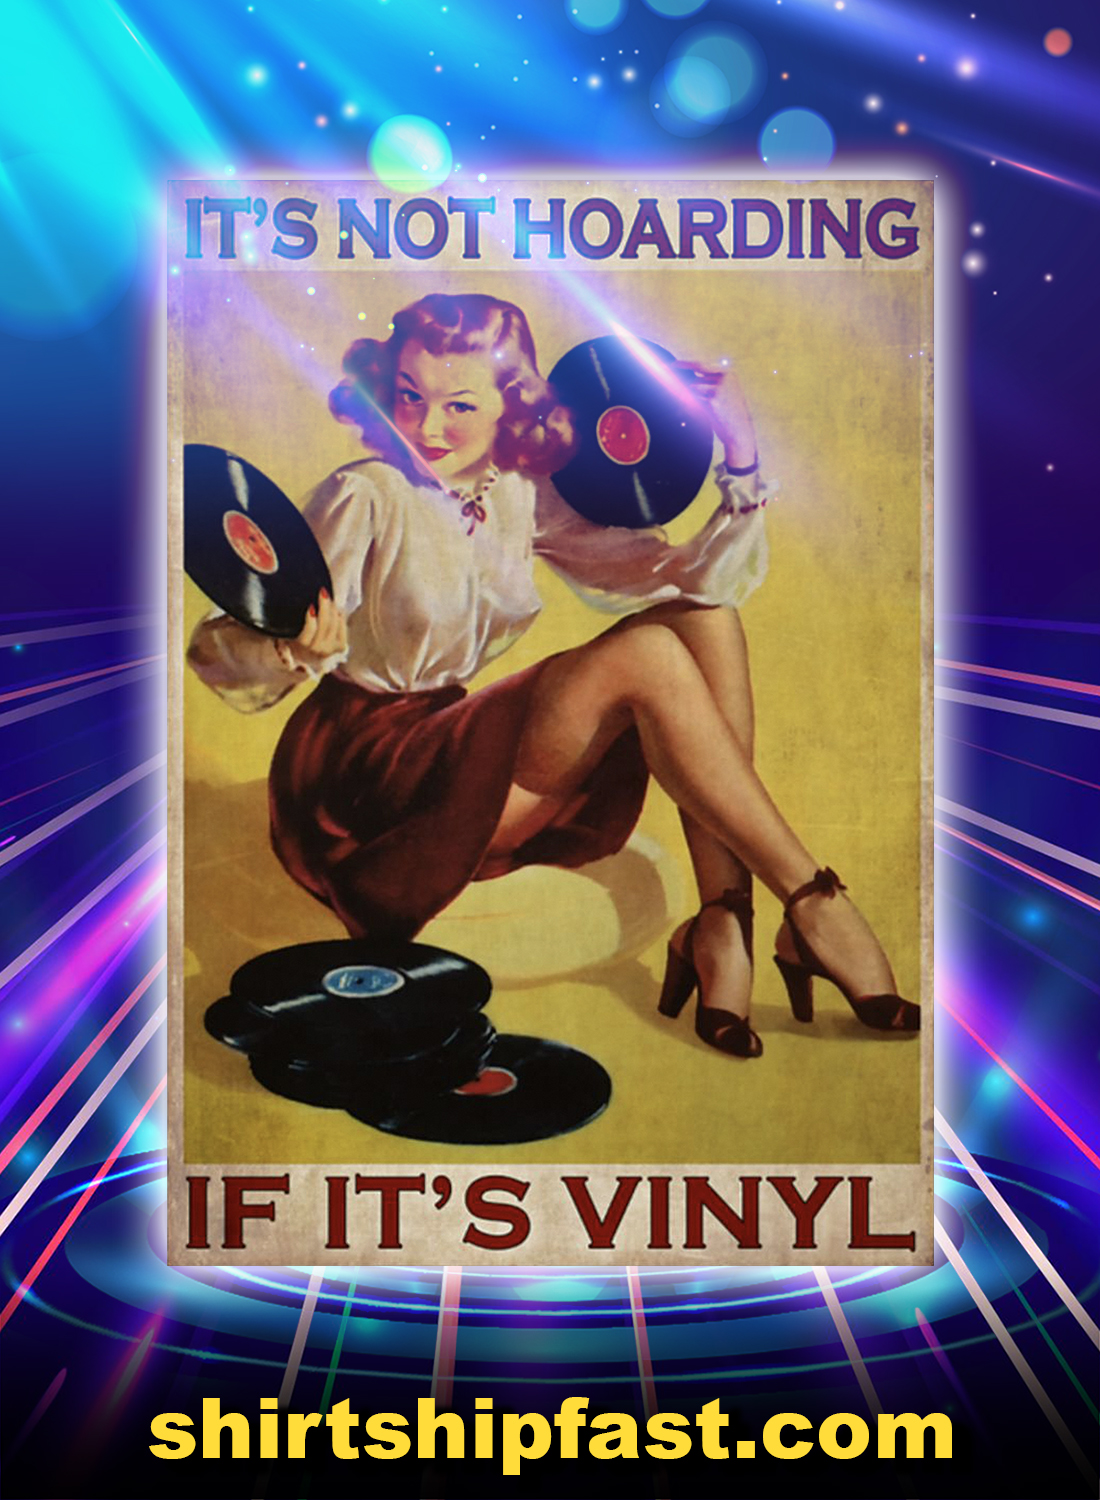 Blonde girl It's not hoarding if it's vinyl poster - A4